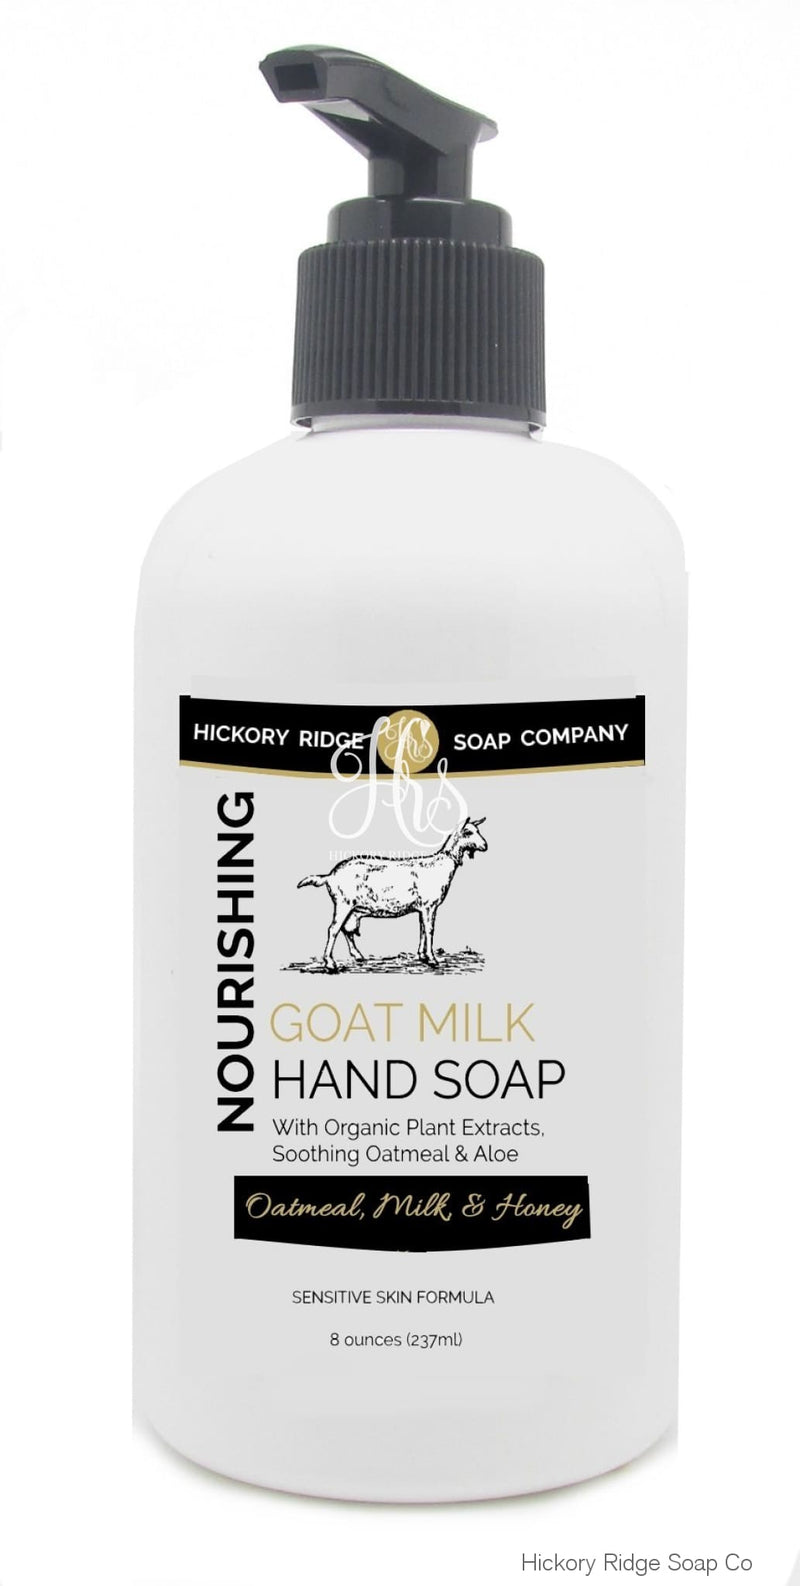 Oatmeal Milk & Honey Goat Hand Soap Liquid Soap